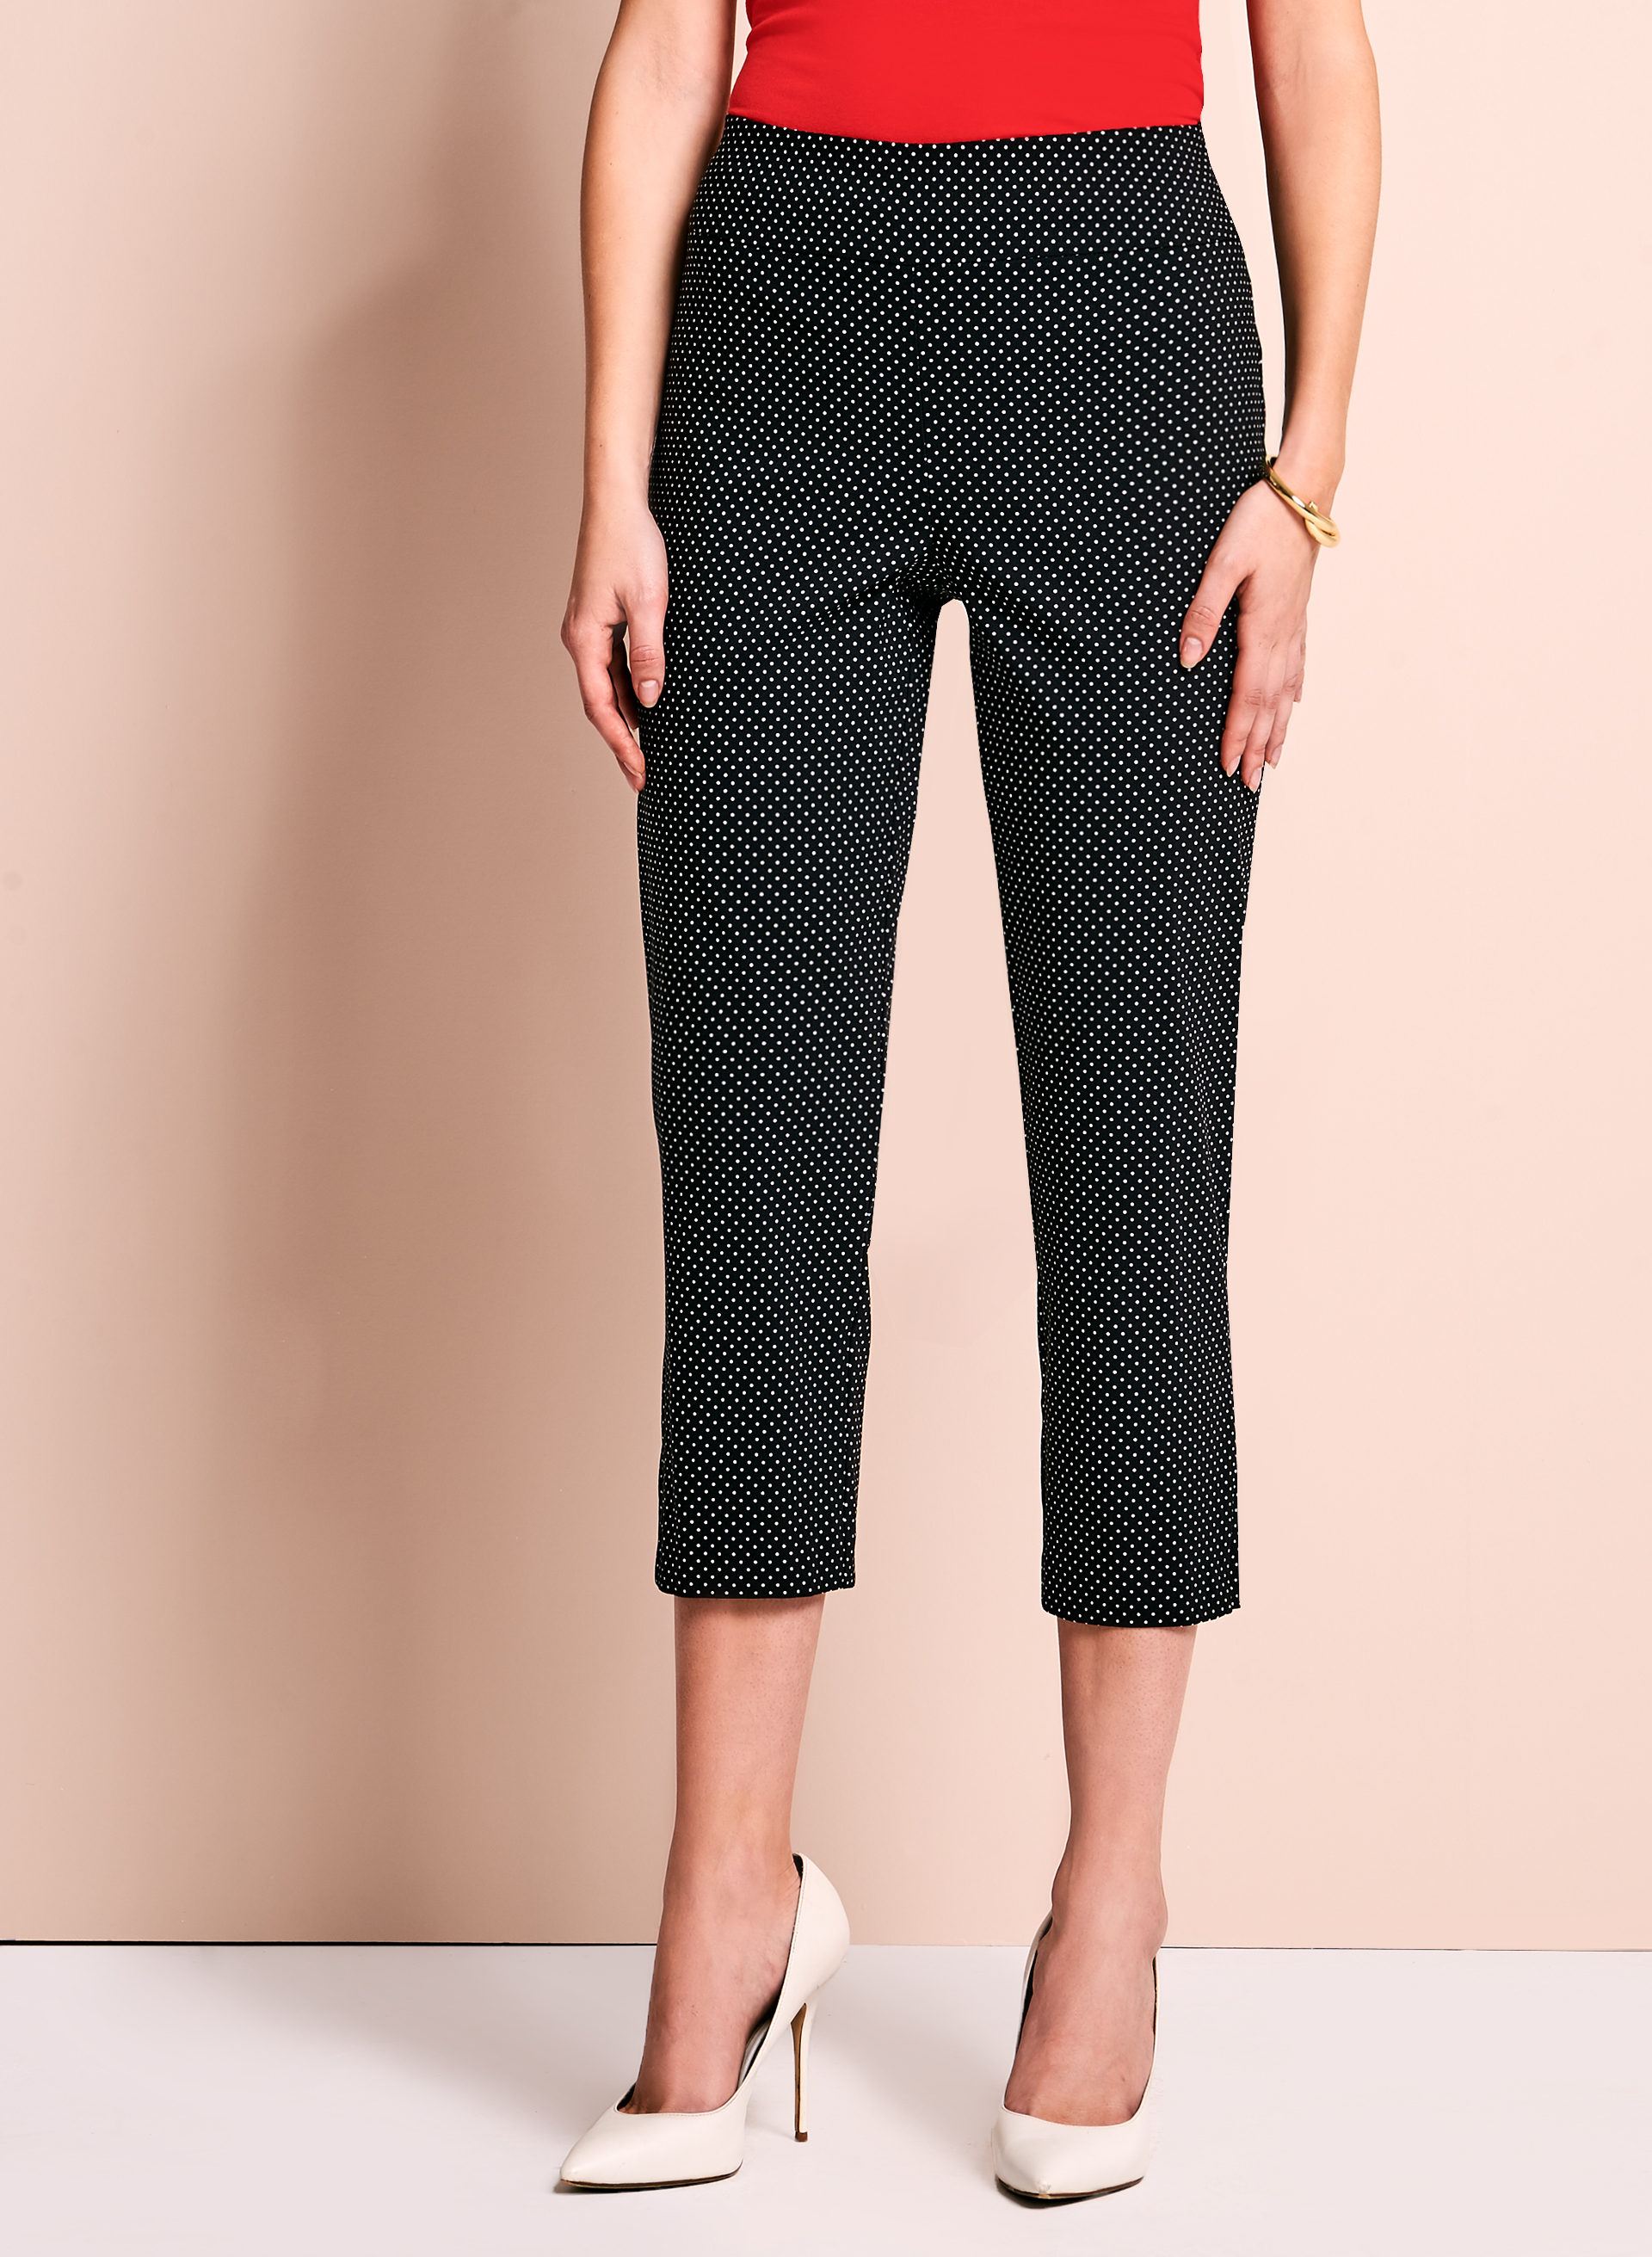 Dot Print Capri Pants, Black, hi-res